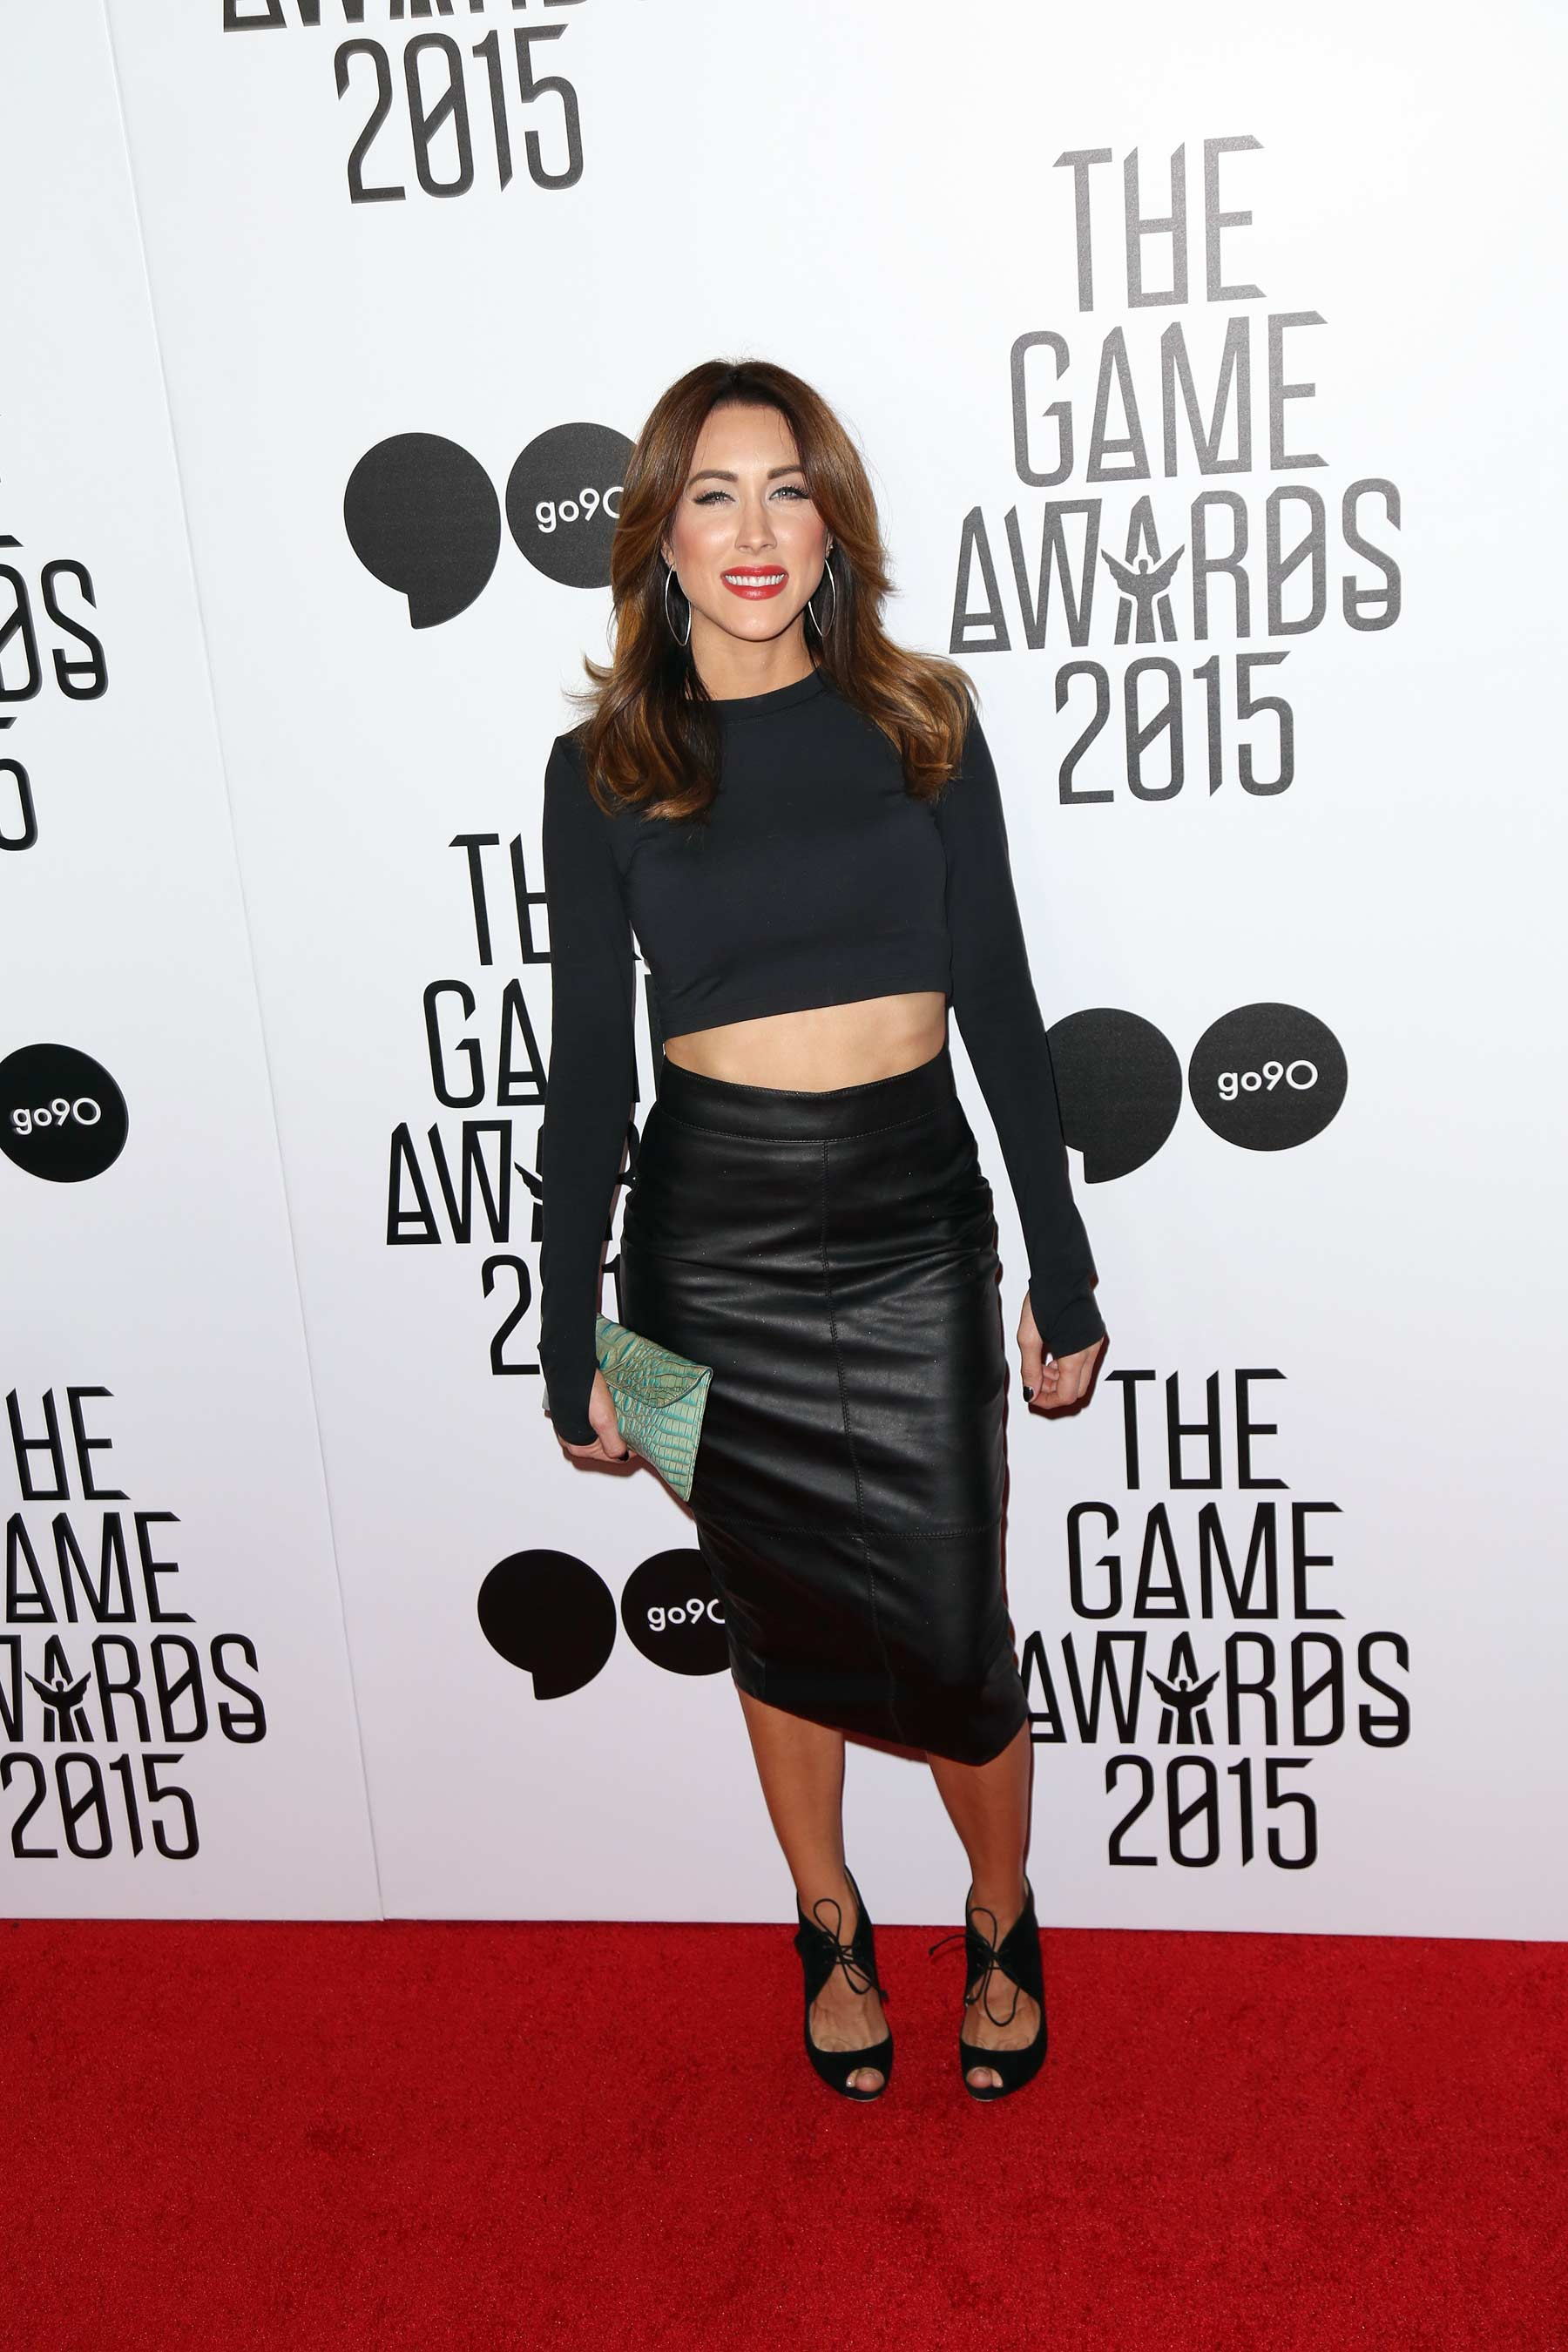 Erin Coscarelli attends The Game Awards 2015